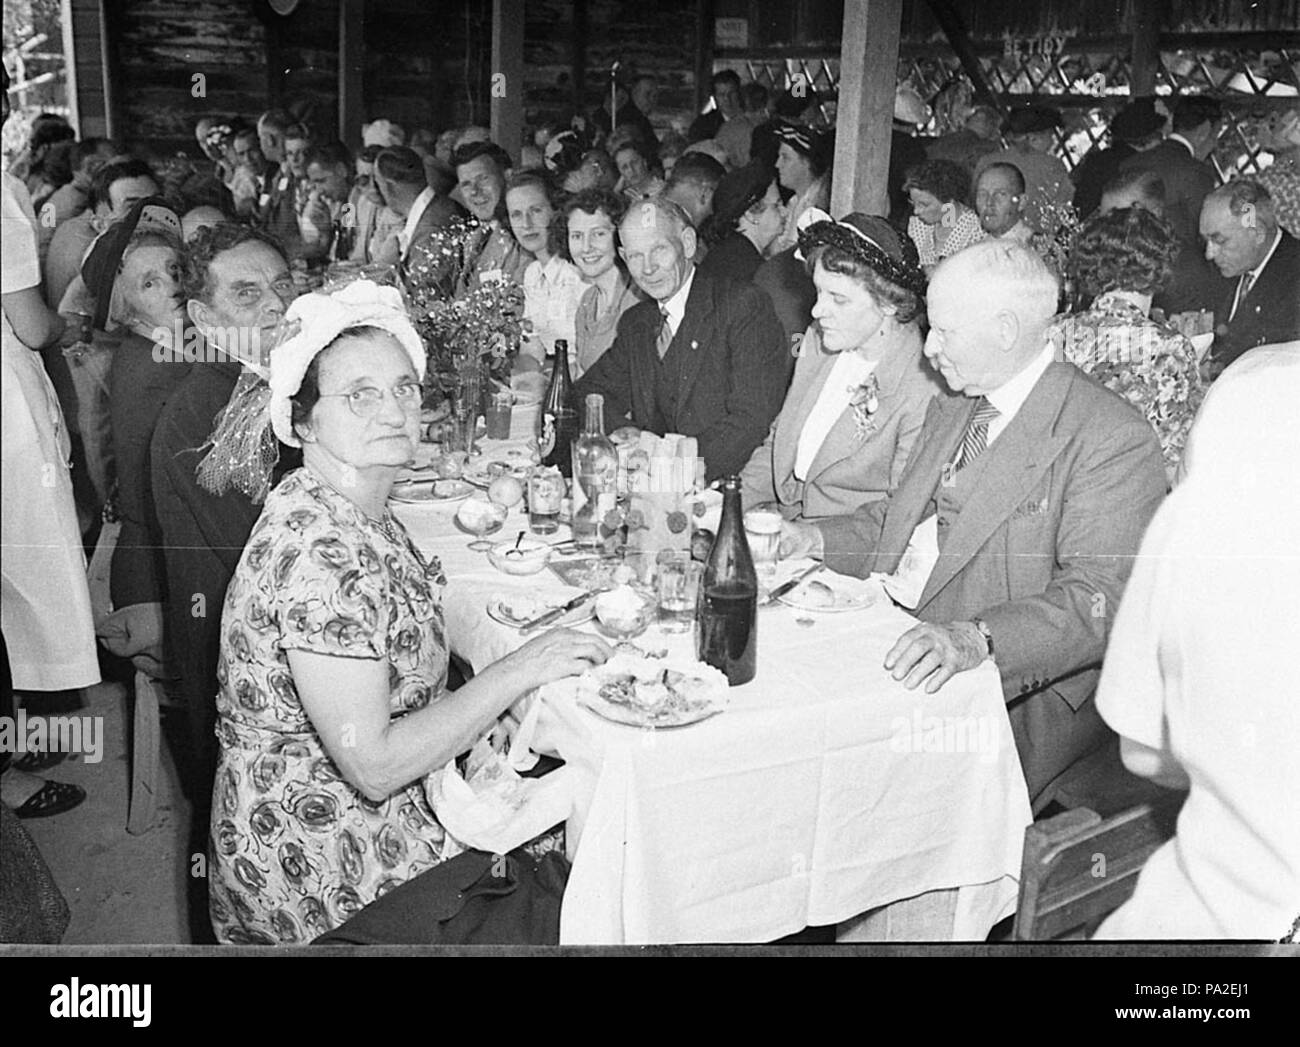 262 SLNSW 36731 Associated Bread Manufacturing Conference picnic luncheon at Middle Harbour - Stock Image